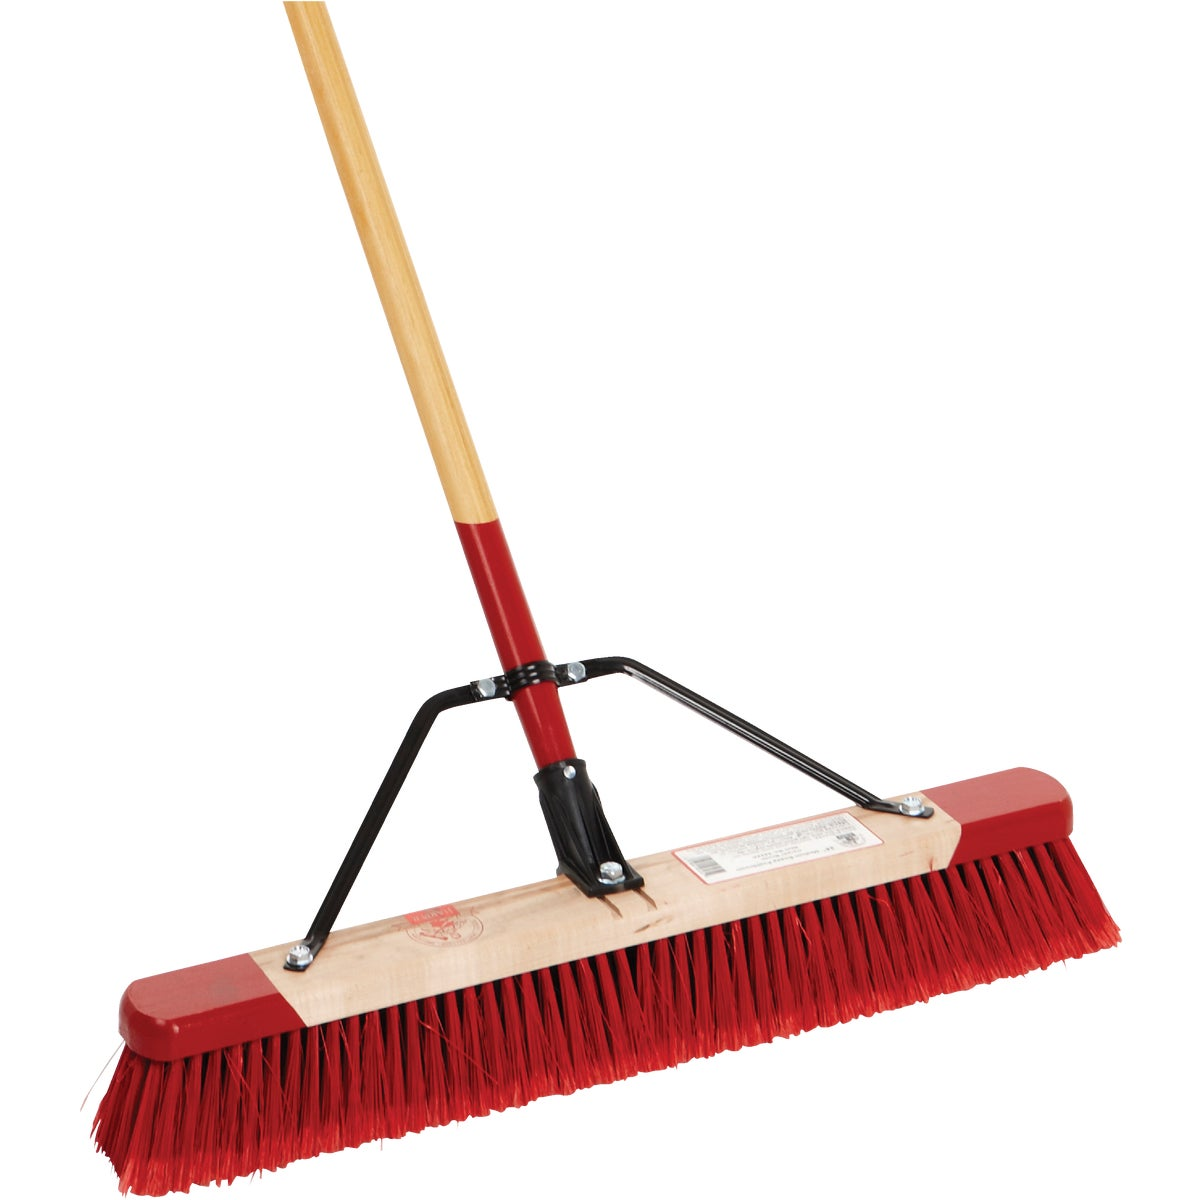 "24"" MED SWP PUSH BROOM - 3424A by Harper Brush Incom"